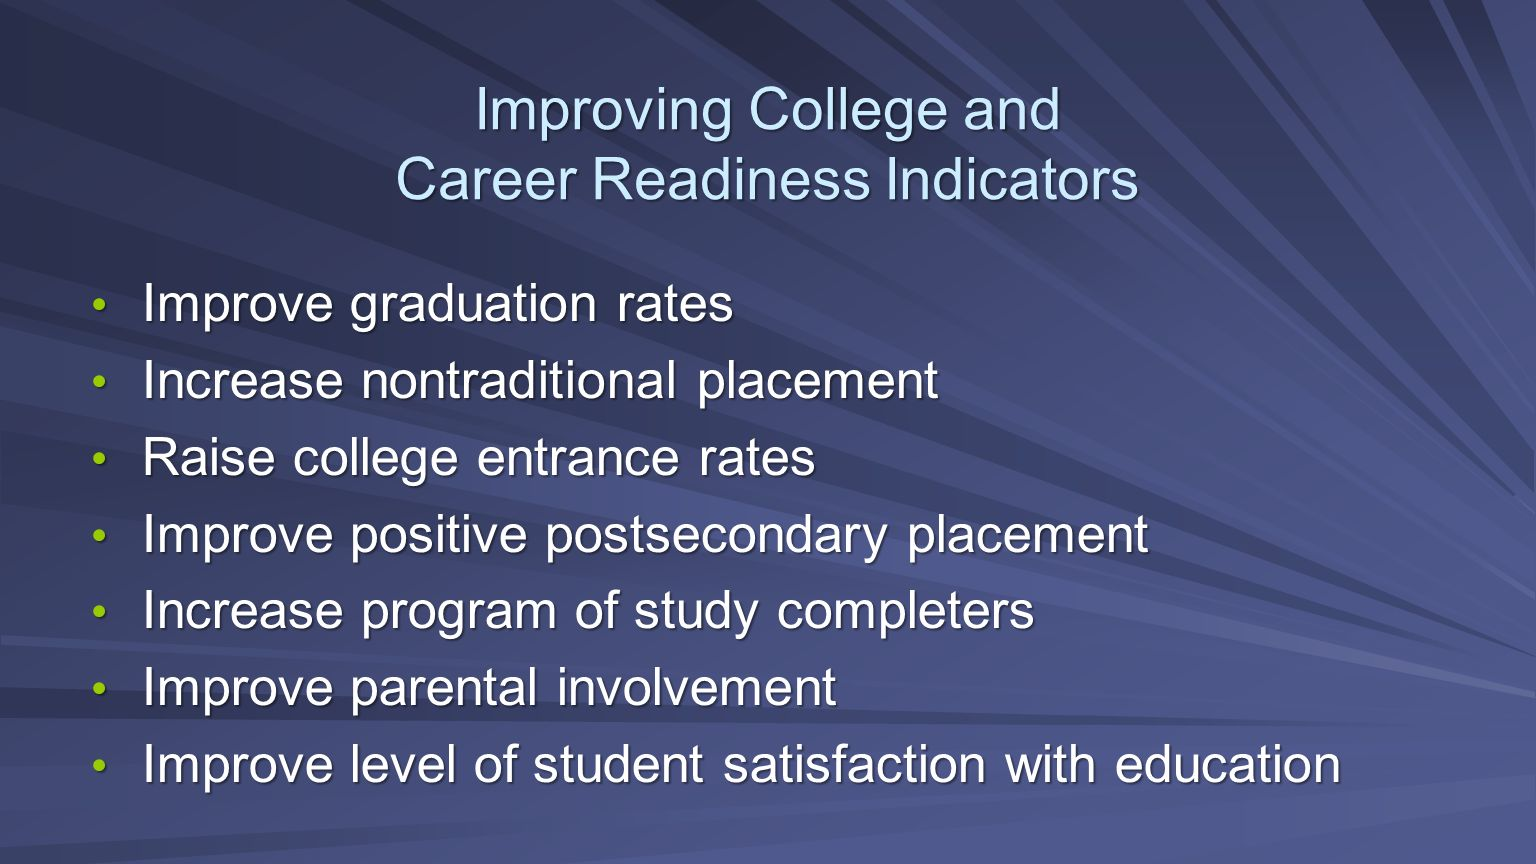 Improving College and Career Readiness Indicators Improve graduation rates Improve graduation rates Increase nontraditional placement Increase nontrad